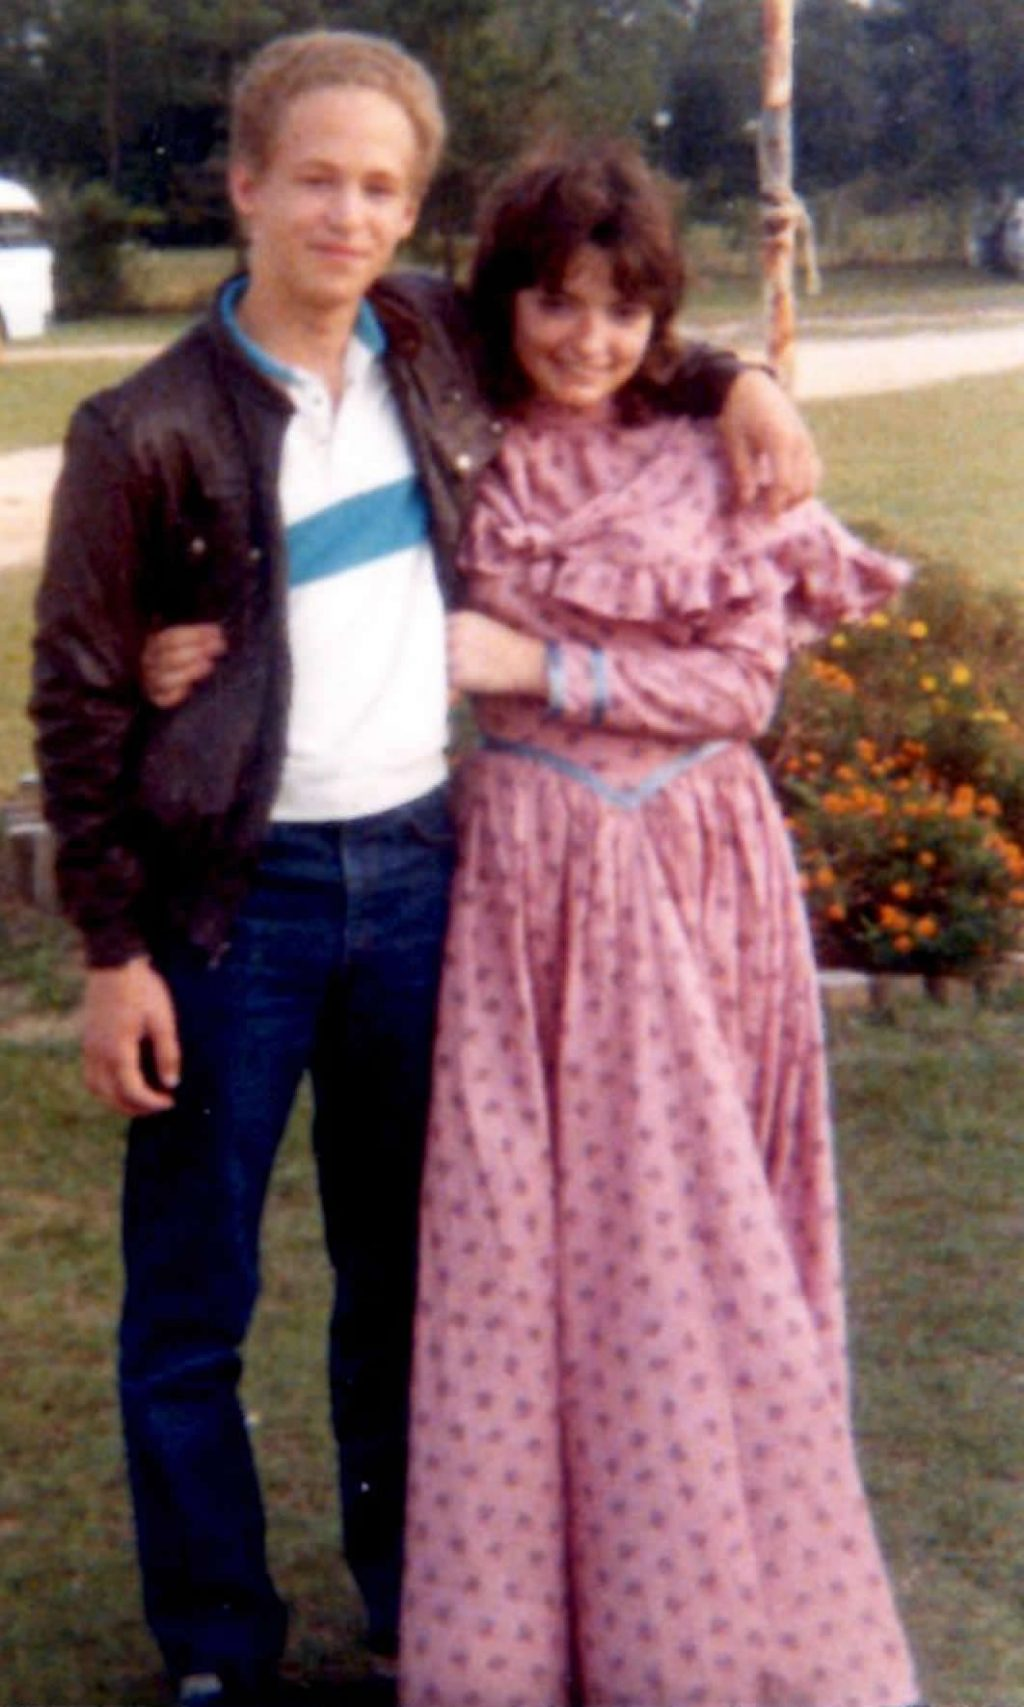 David and I dated in high school. My mom snapped this photo at a church event where we were supposed to dress up as pioneers.